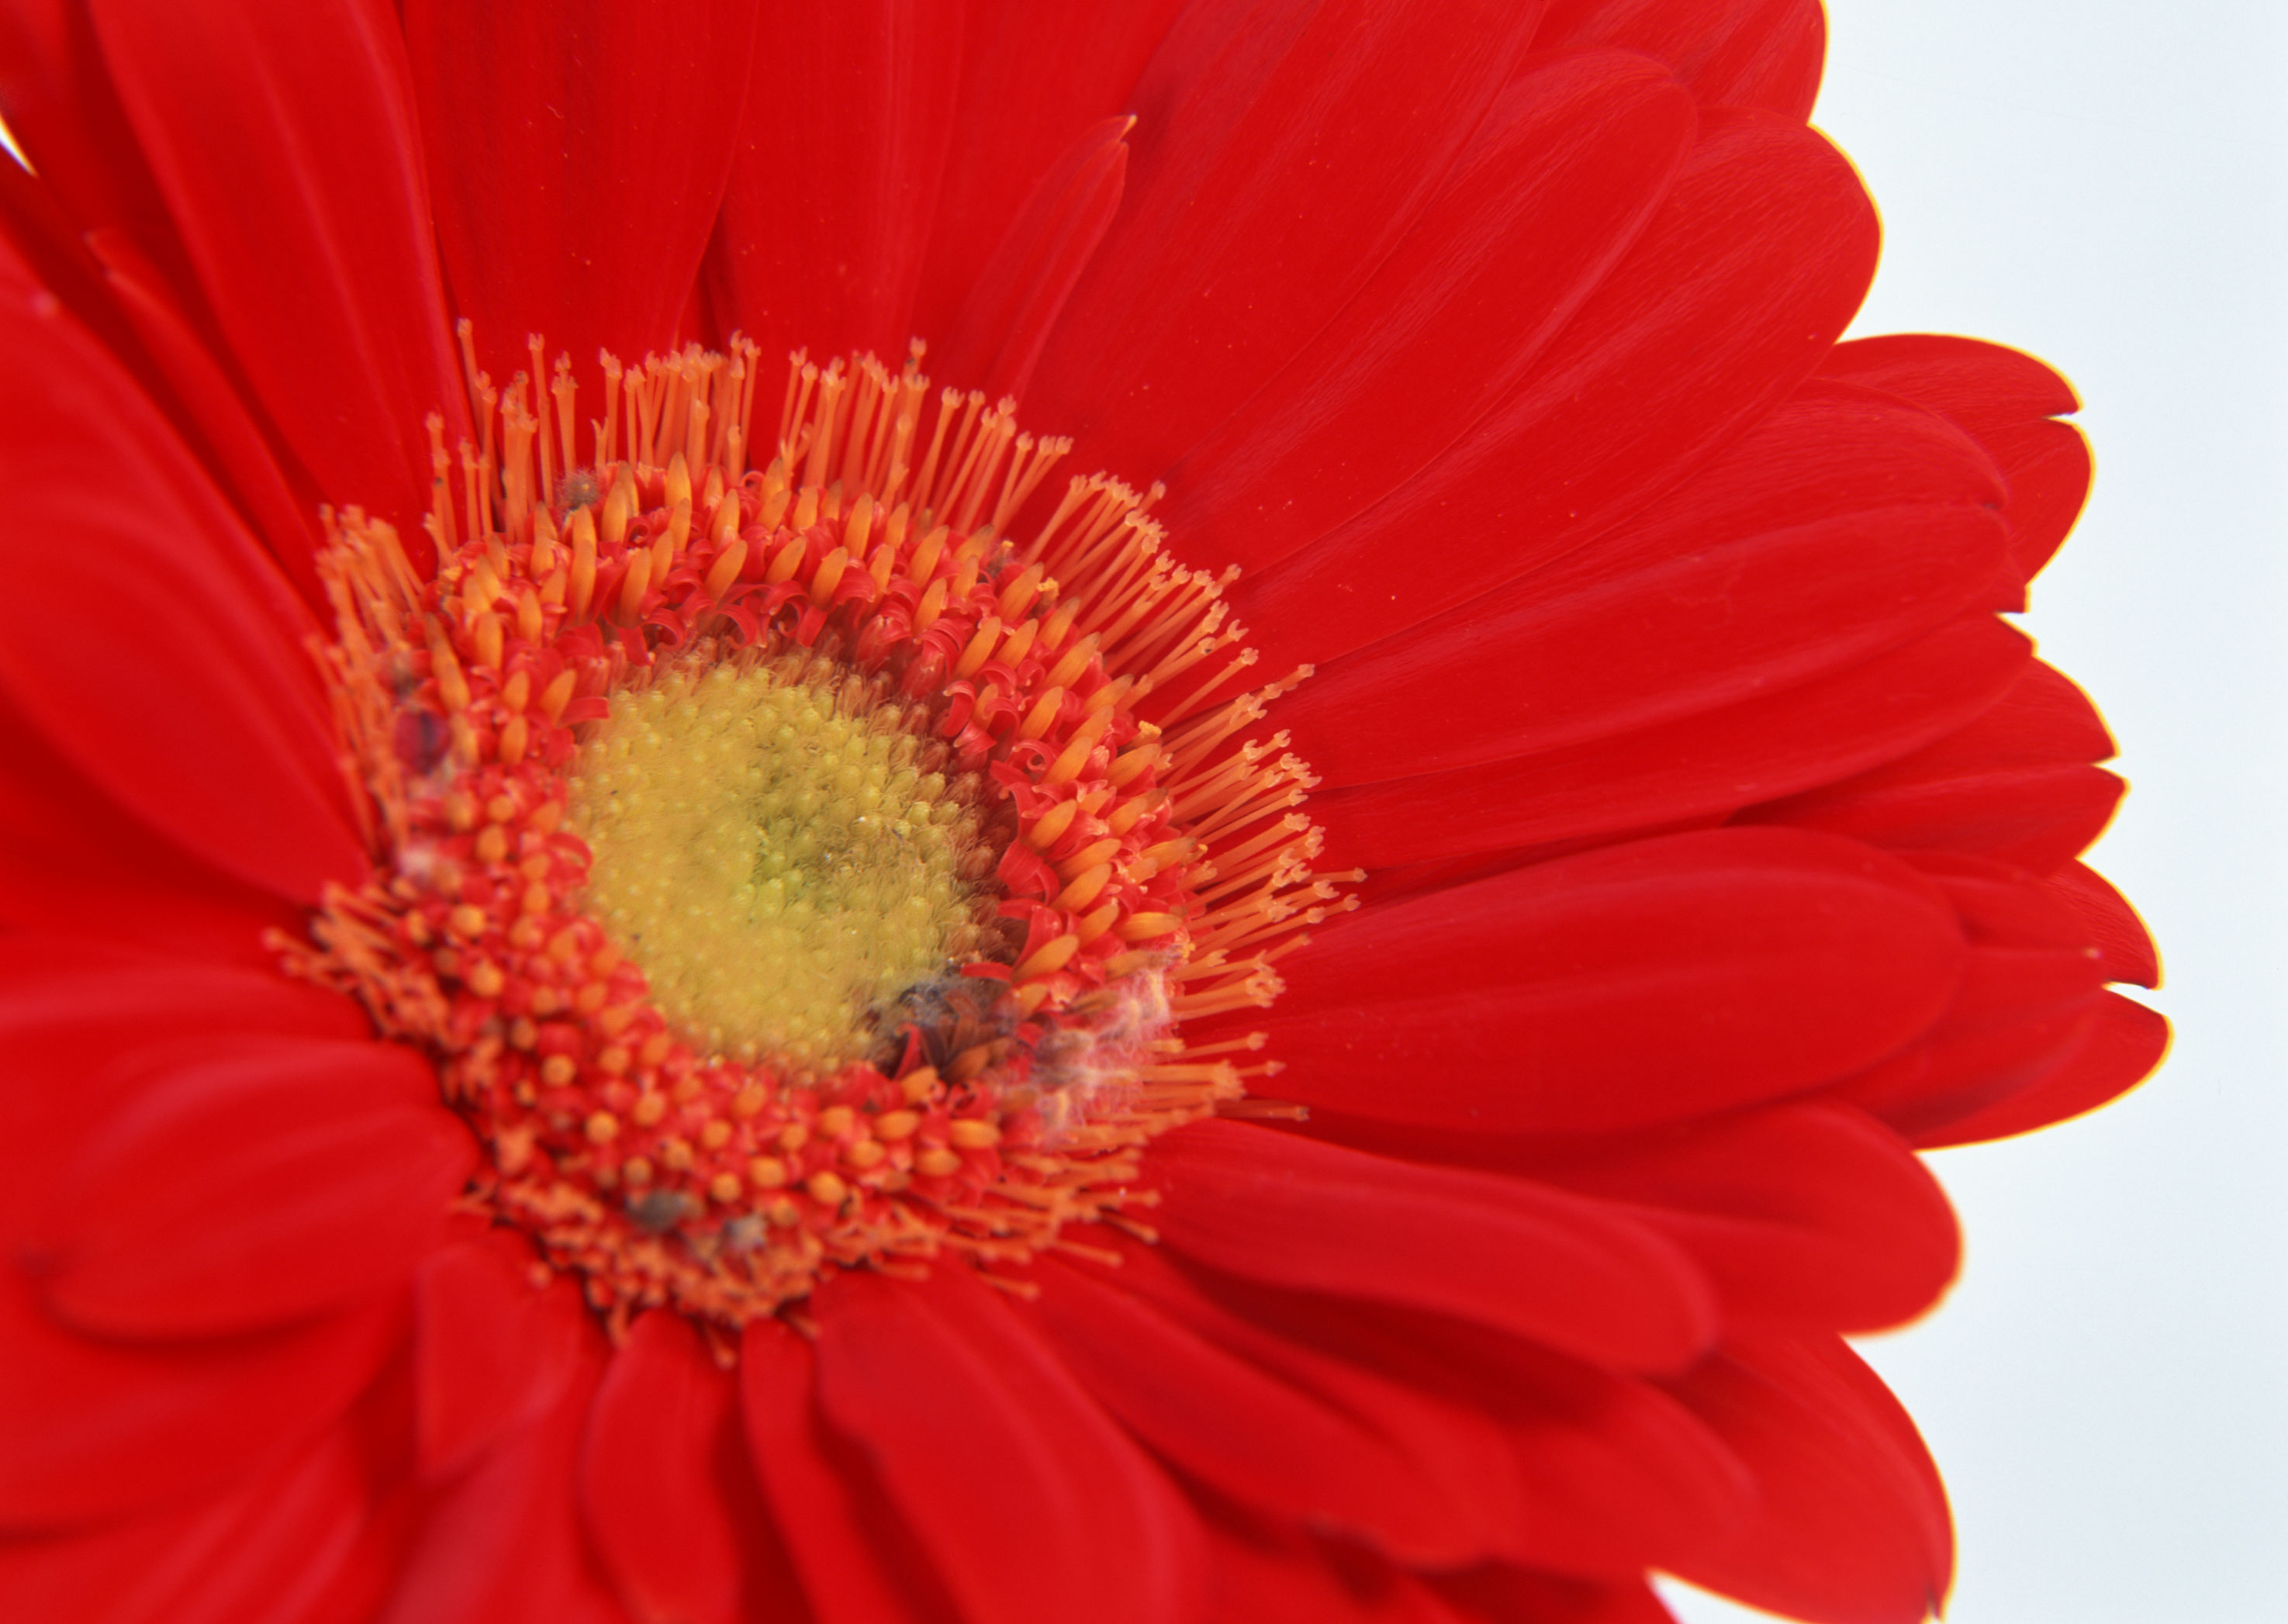 Free download high resolution image - free image free photo free stock image public domain picture -Red Gerber Blumen